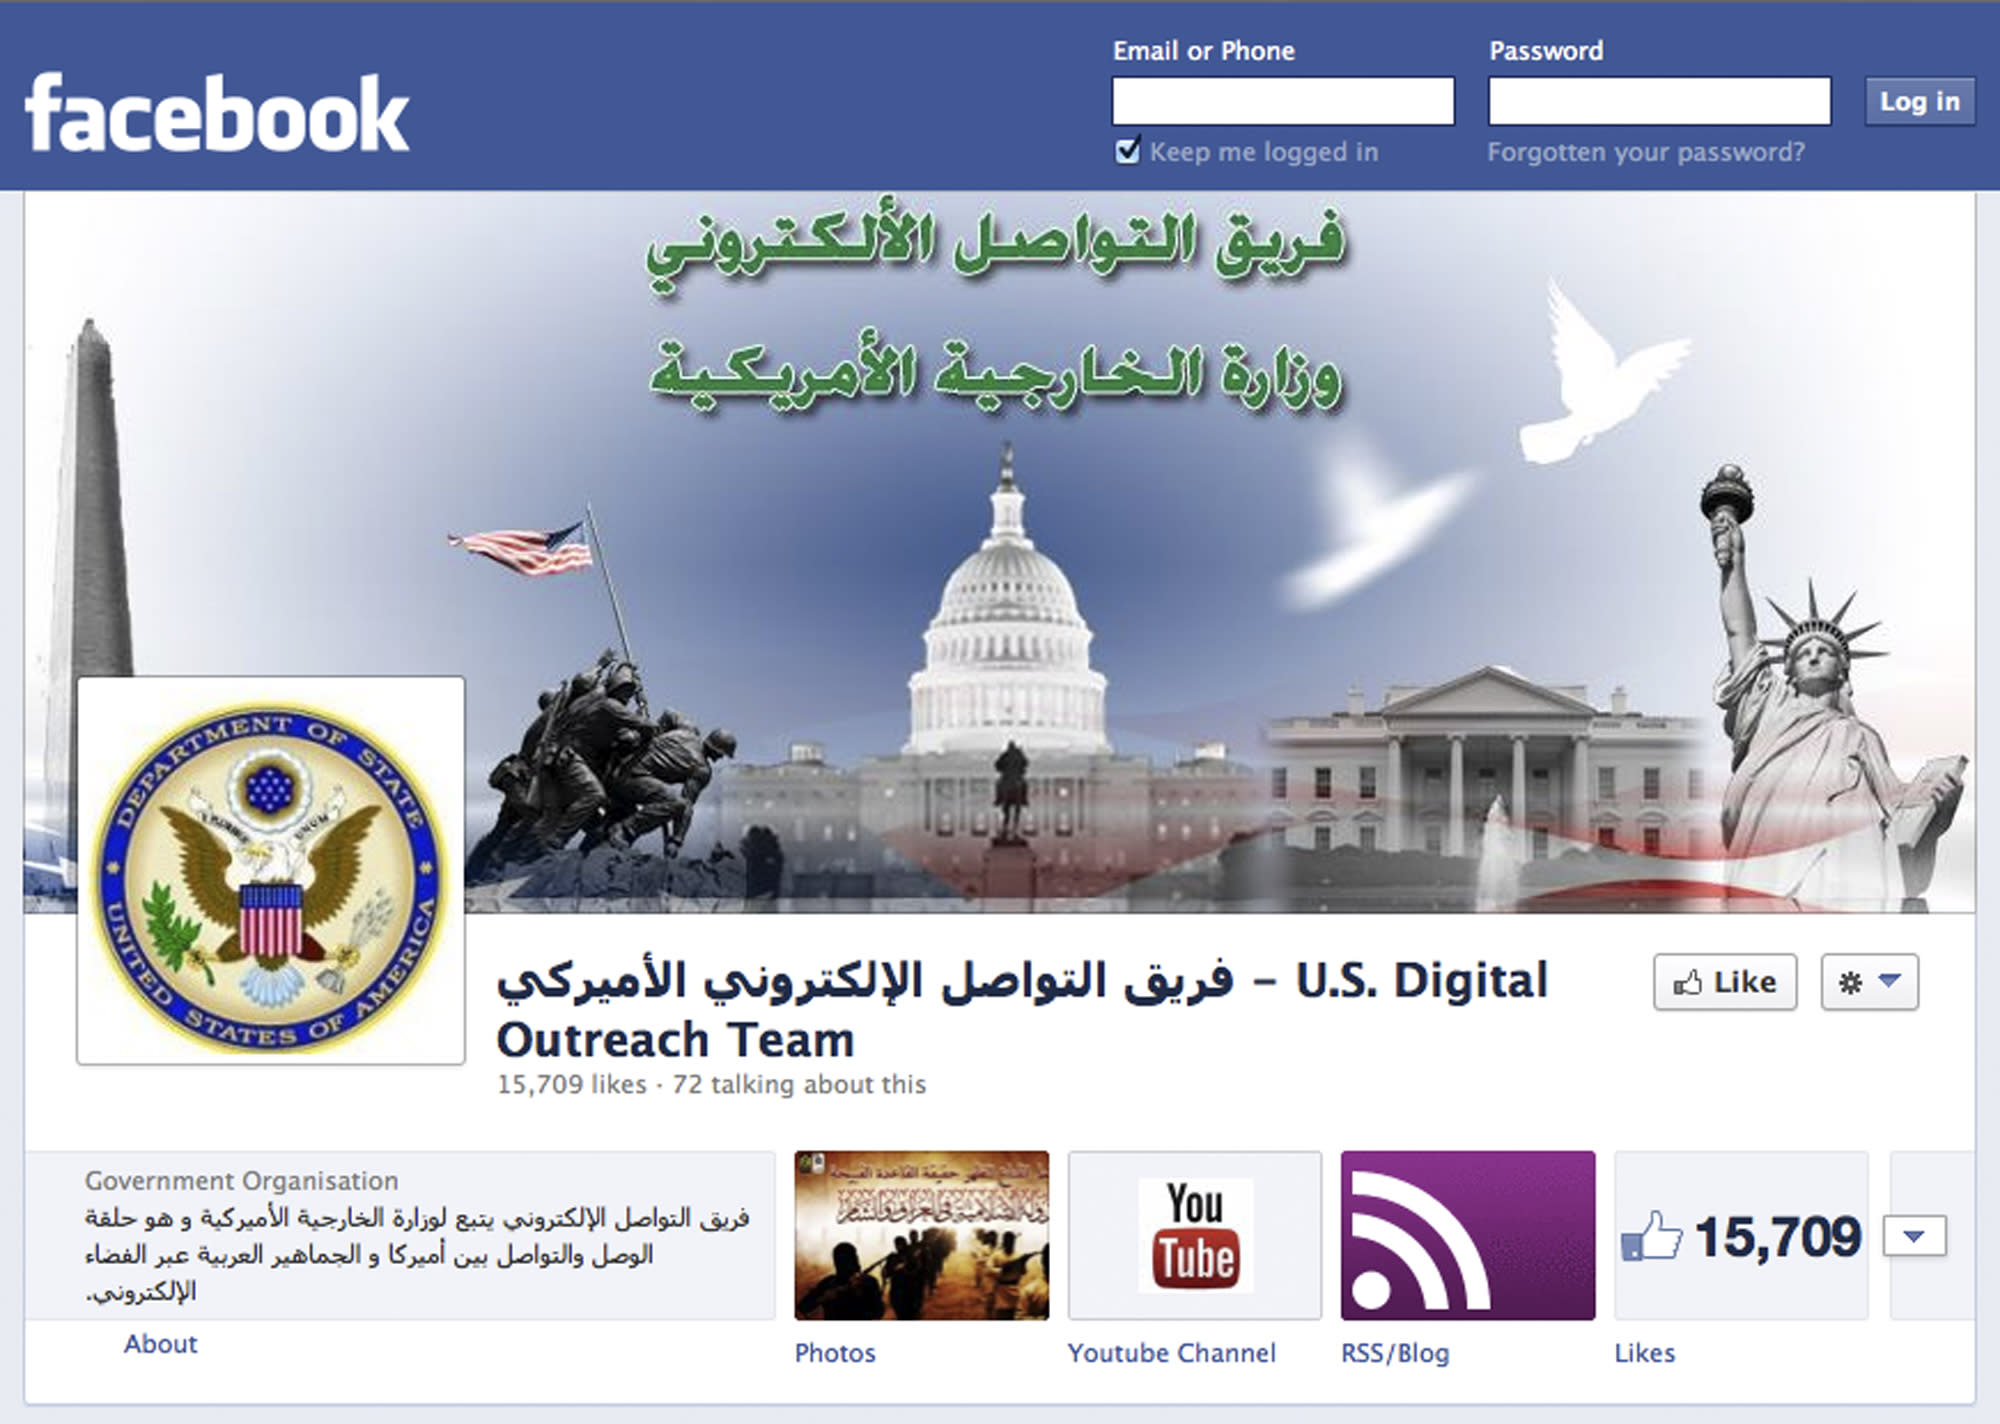 """This image downloaded from the internet on Thursday, April 11, 2013 shows the Facebook page of the U.S. Digital Outreach Team, a group operating within the U.S. Department of State. A 50-member group of U.S. government workers comprised of Americans and foreign nationals called the Digital Outreach Team is countering extremist propaganda on sites like Twitter and Facebook, with the top official on the team, Alberto Fernandez, saying the goal is to contest space that had previously been ceded to extremists. Page title in arabic reads """"US Digital Outreach Team - US Department of State"""". (AP Photo/U.S. Digital Outreach Team)"""